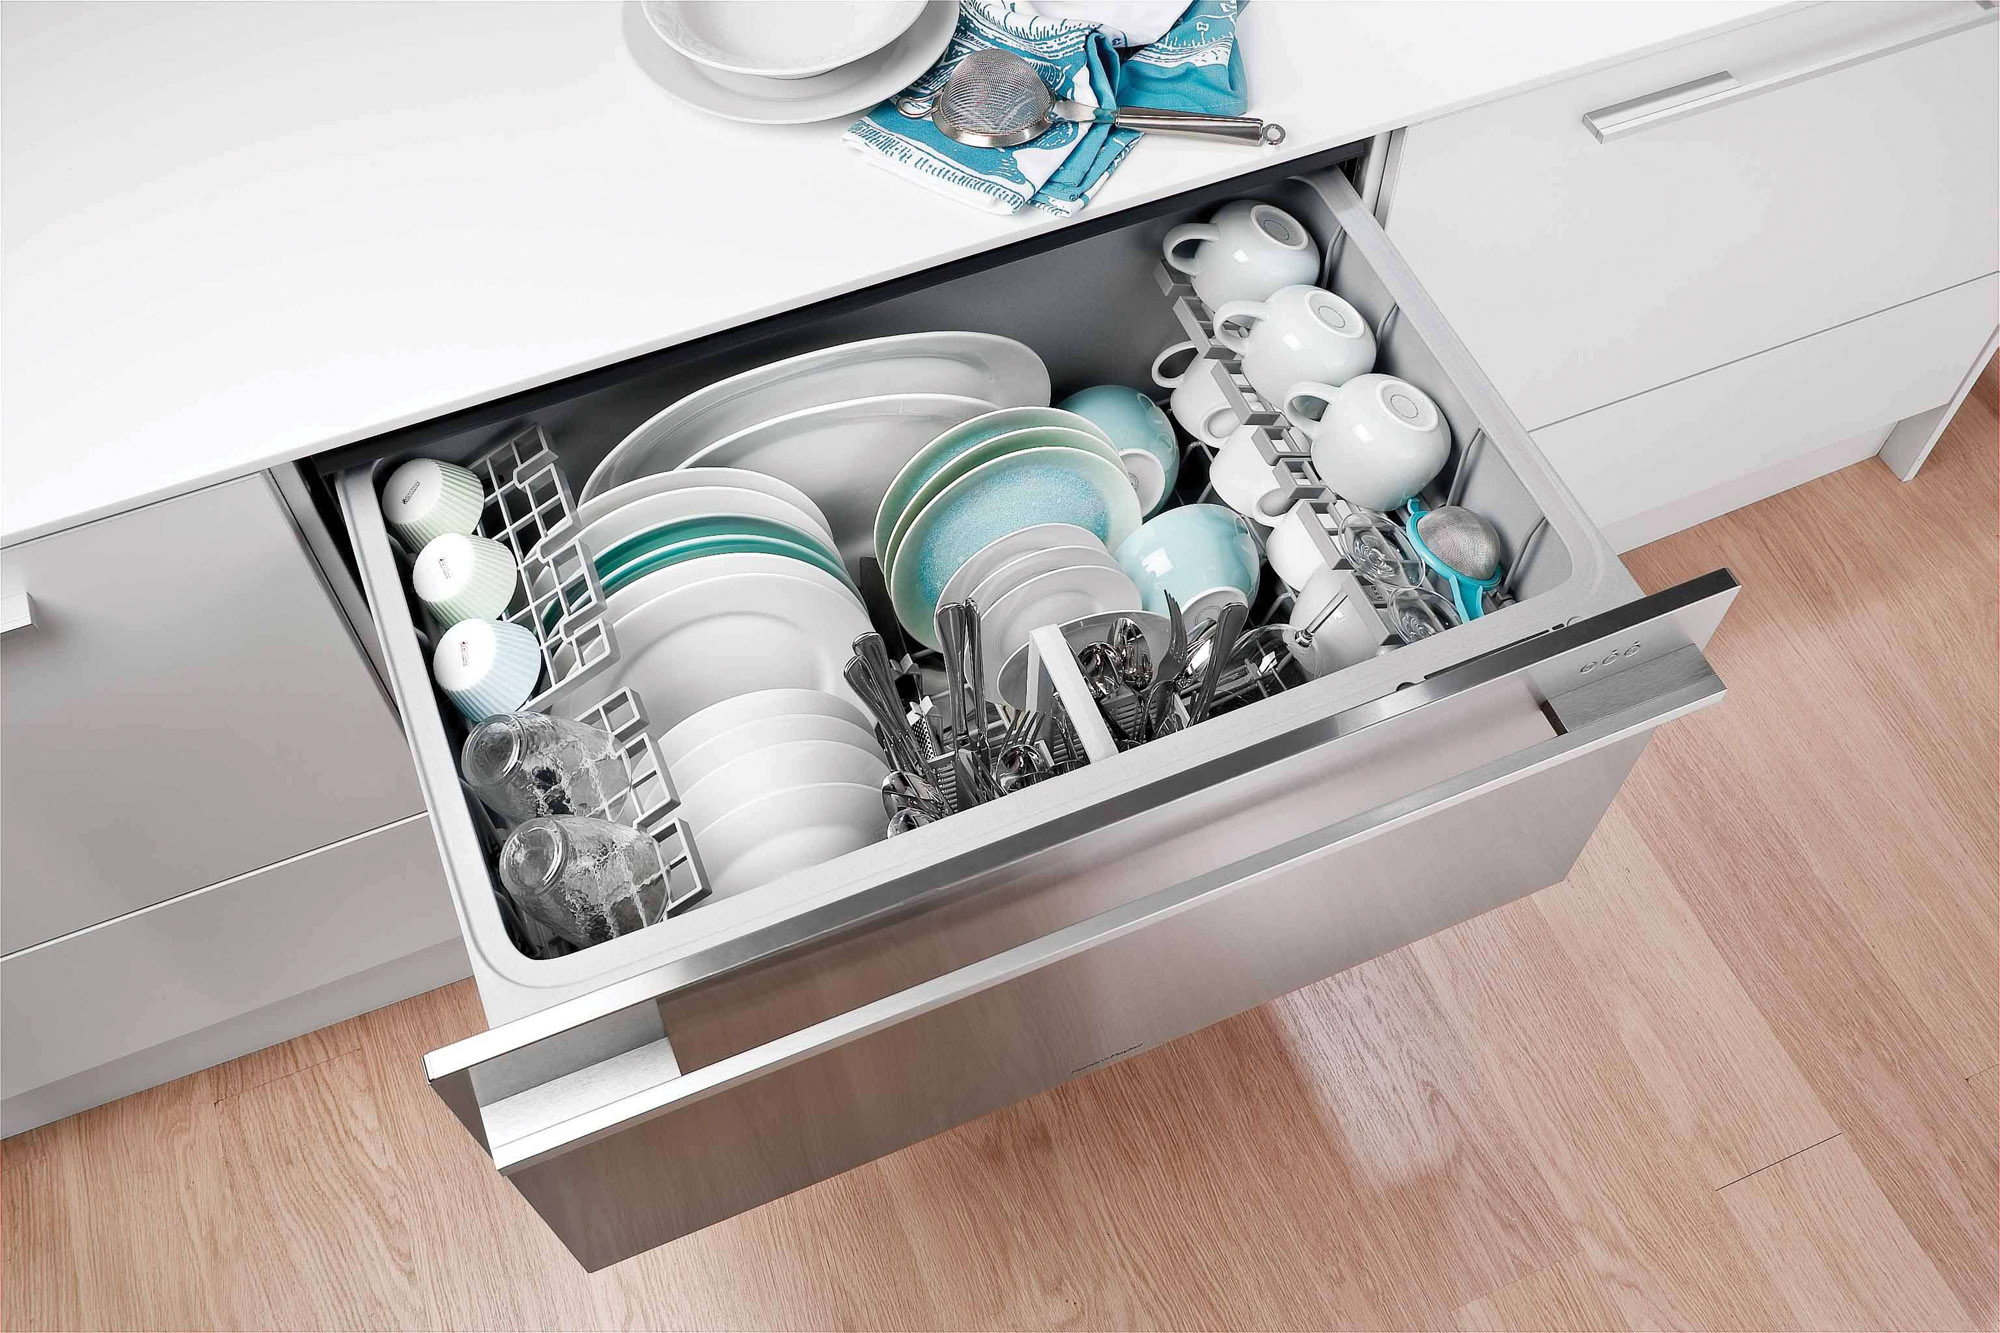 Fisher & Paykel sells ergonomically  designed, single and double dishwasher drawers that are accessible and don't require bending over.